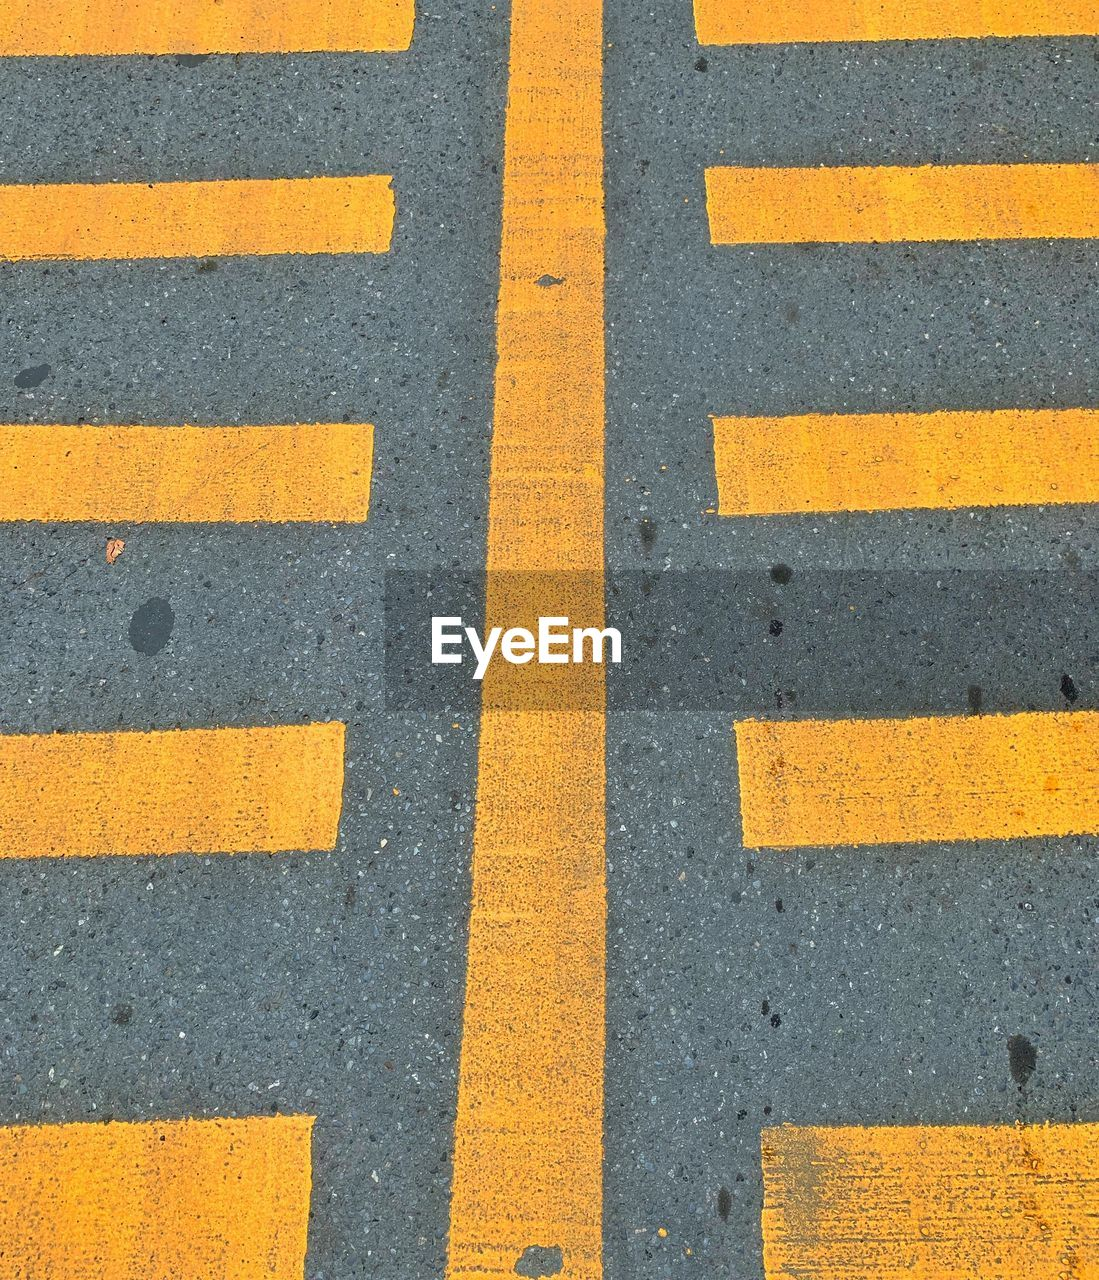 road, symbol, transportation, road marking, sign, yellow, asphalt, marking, high angle view, no people, backgrounds, city, direction, day, striped, guidance, street, full frame, safety, pattern, outdoors, dividing line, parallel